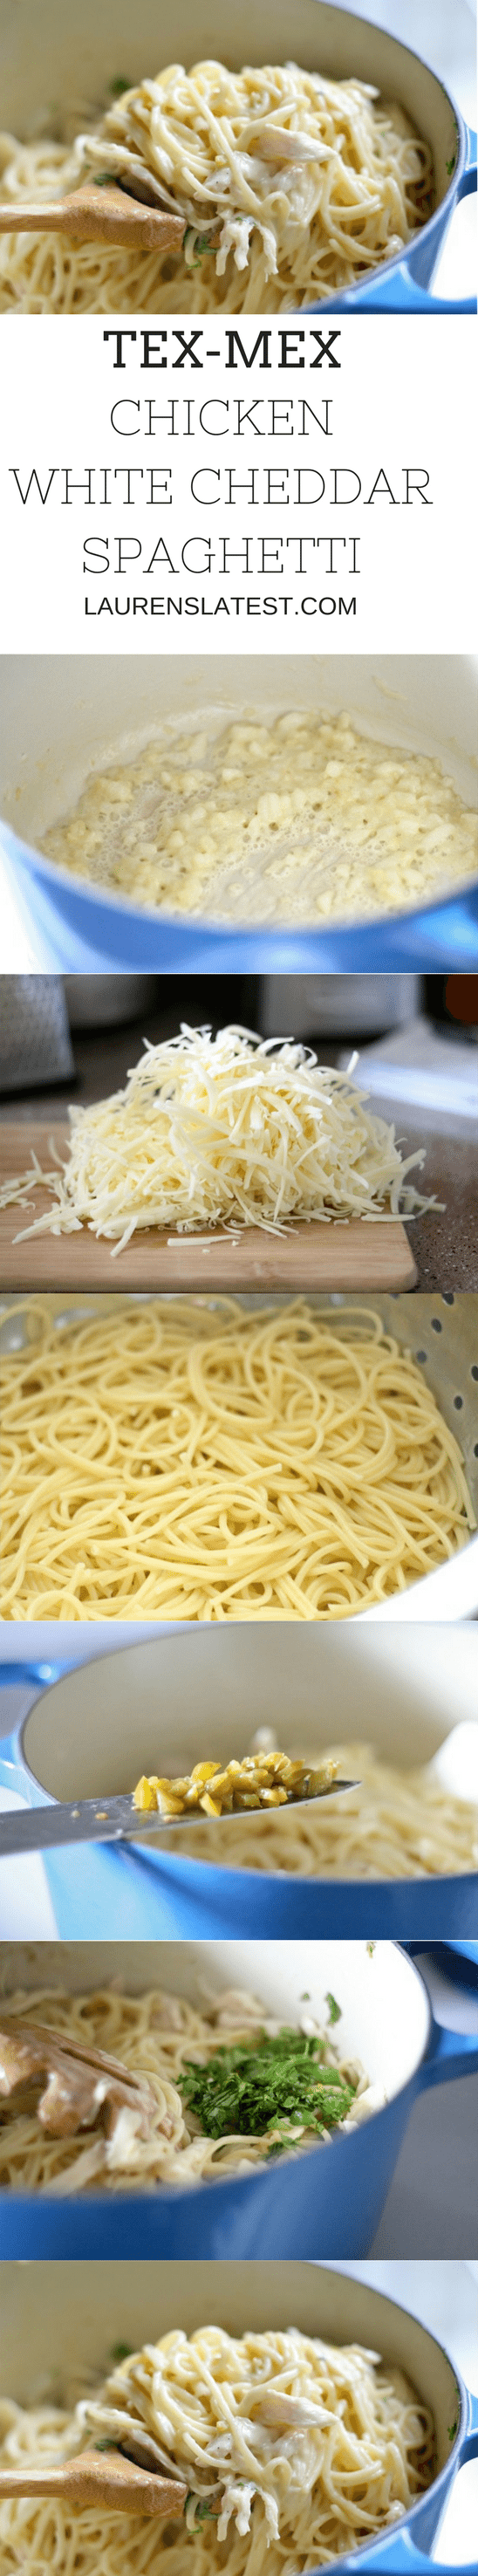 Shredded cheese and cooked noodles